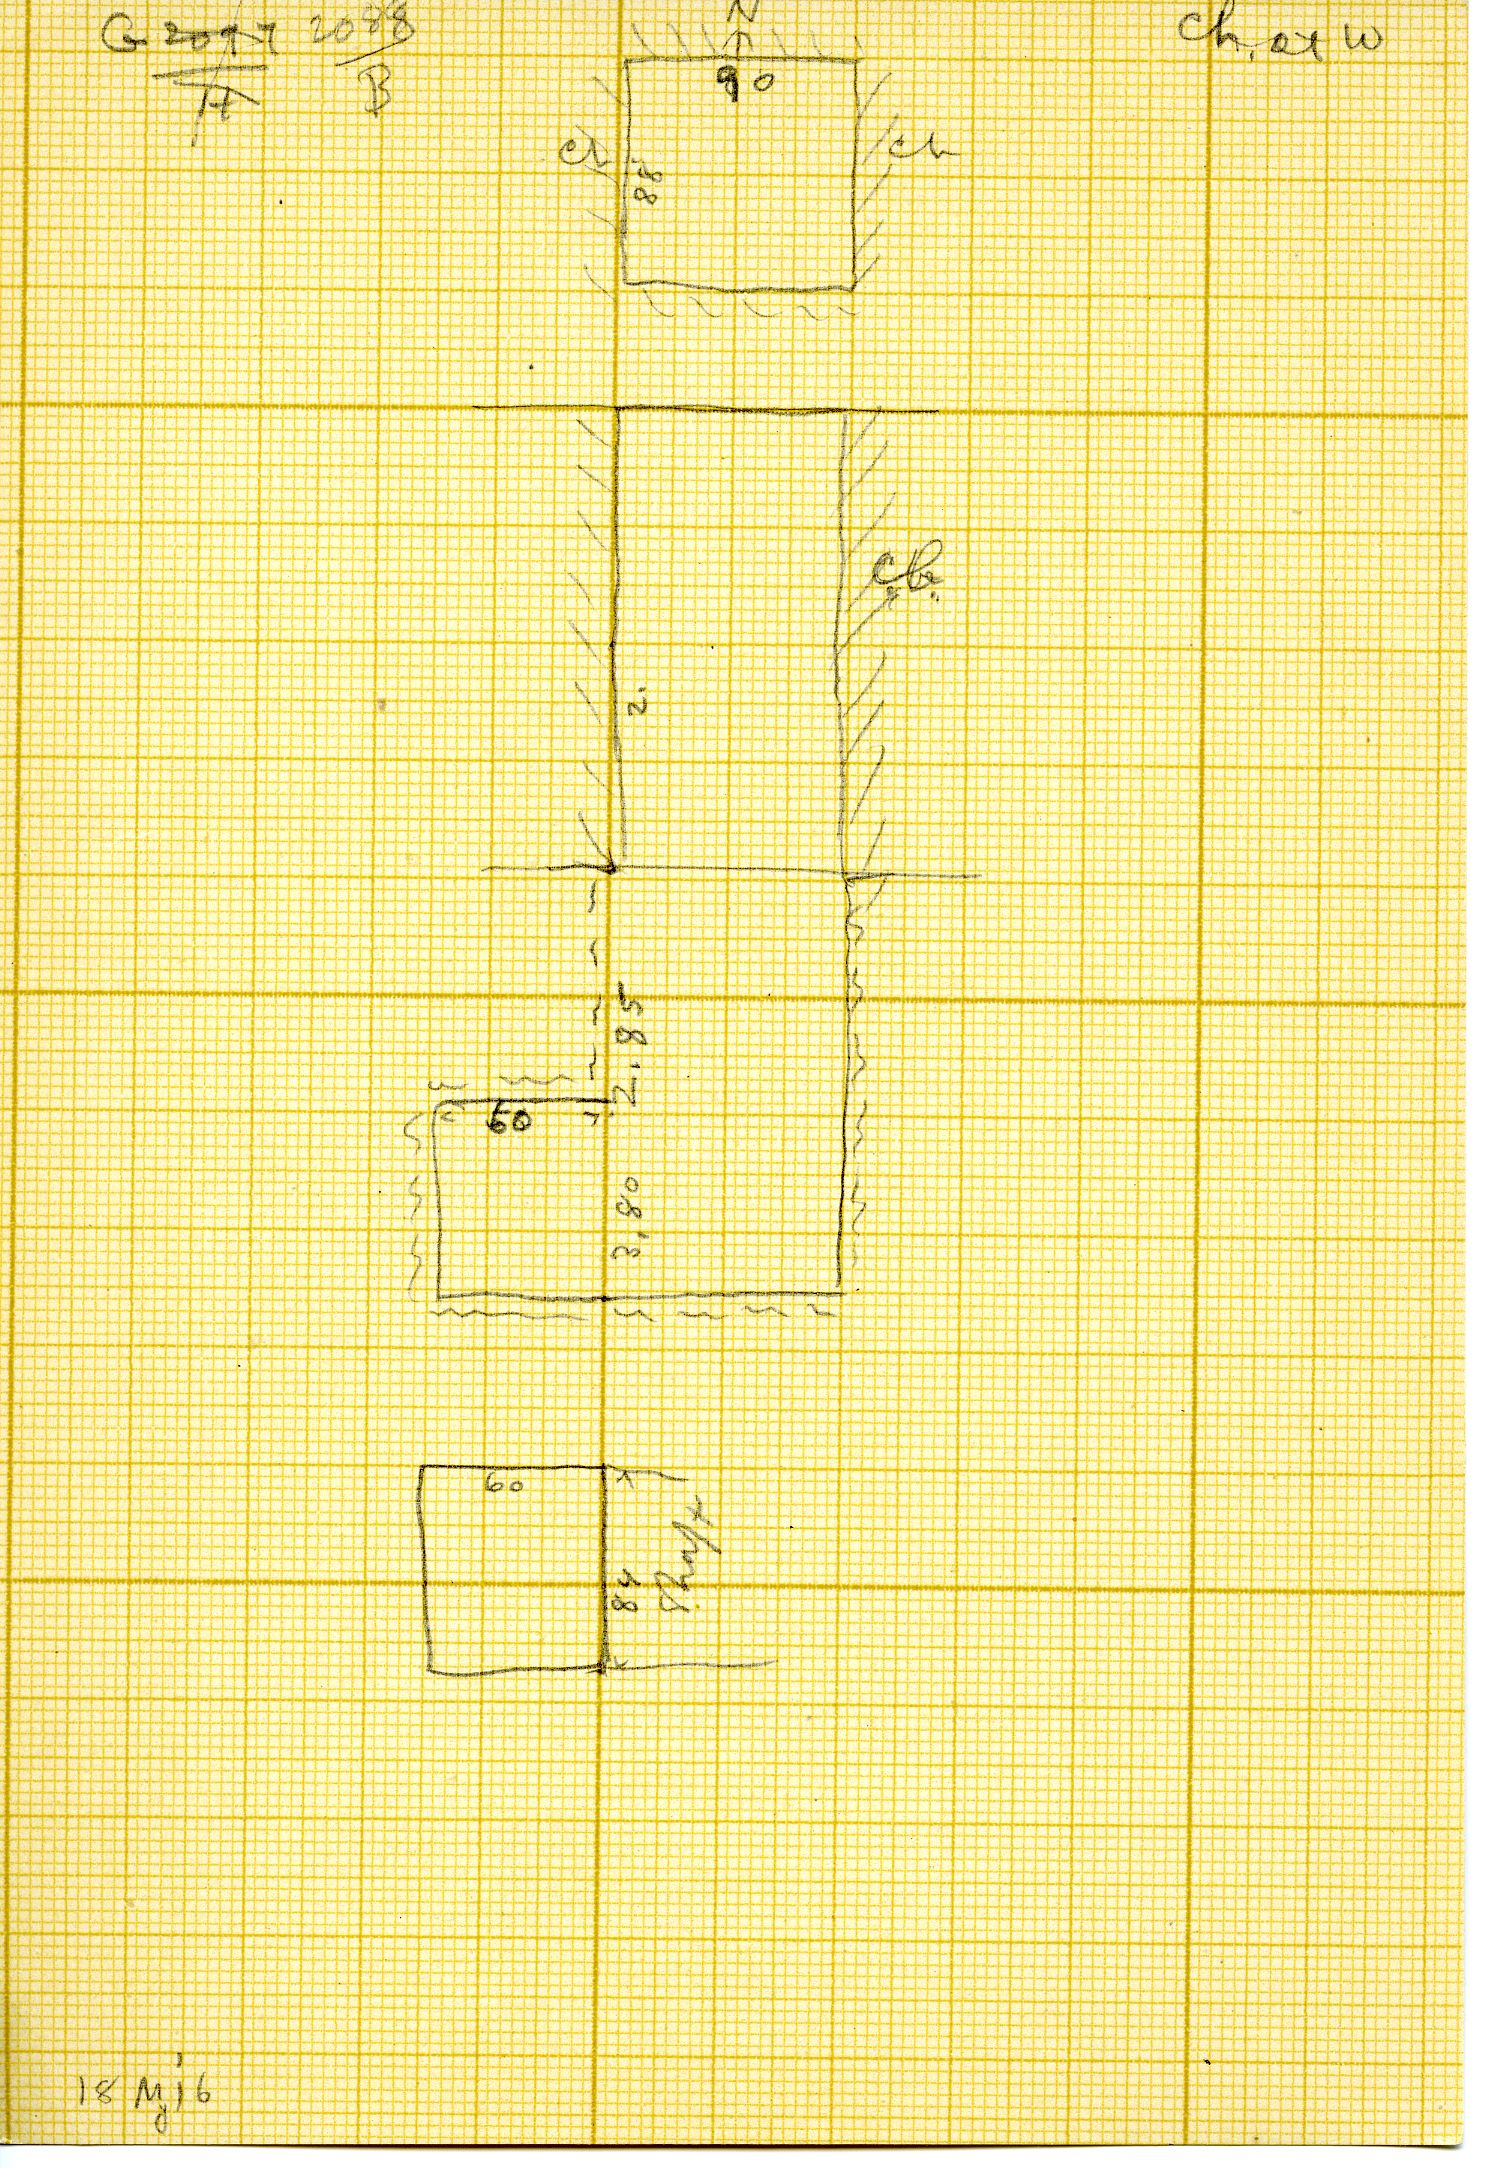 Maps and plans: G 3088, Shaft B